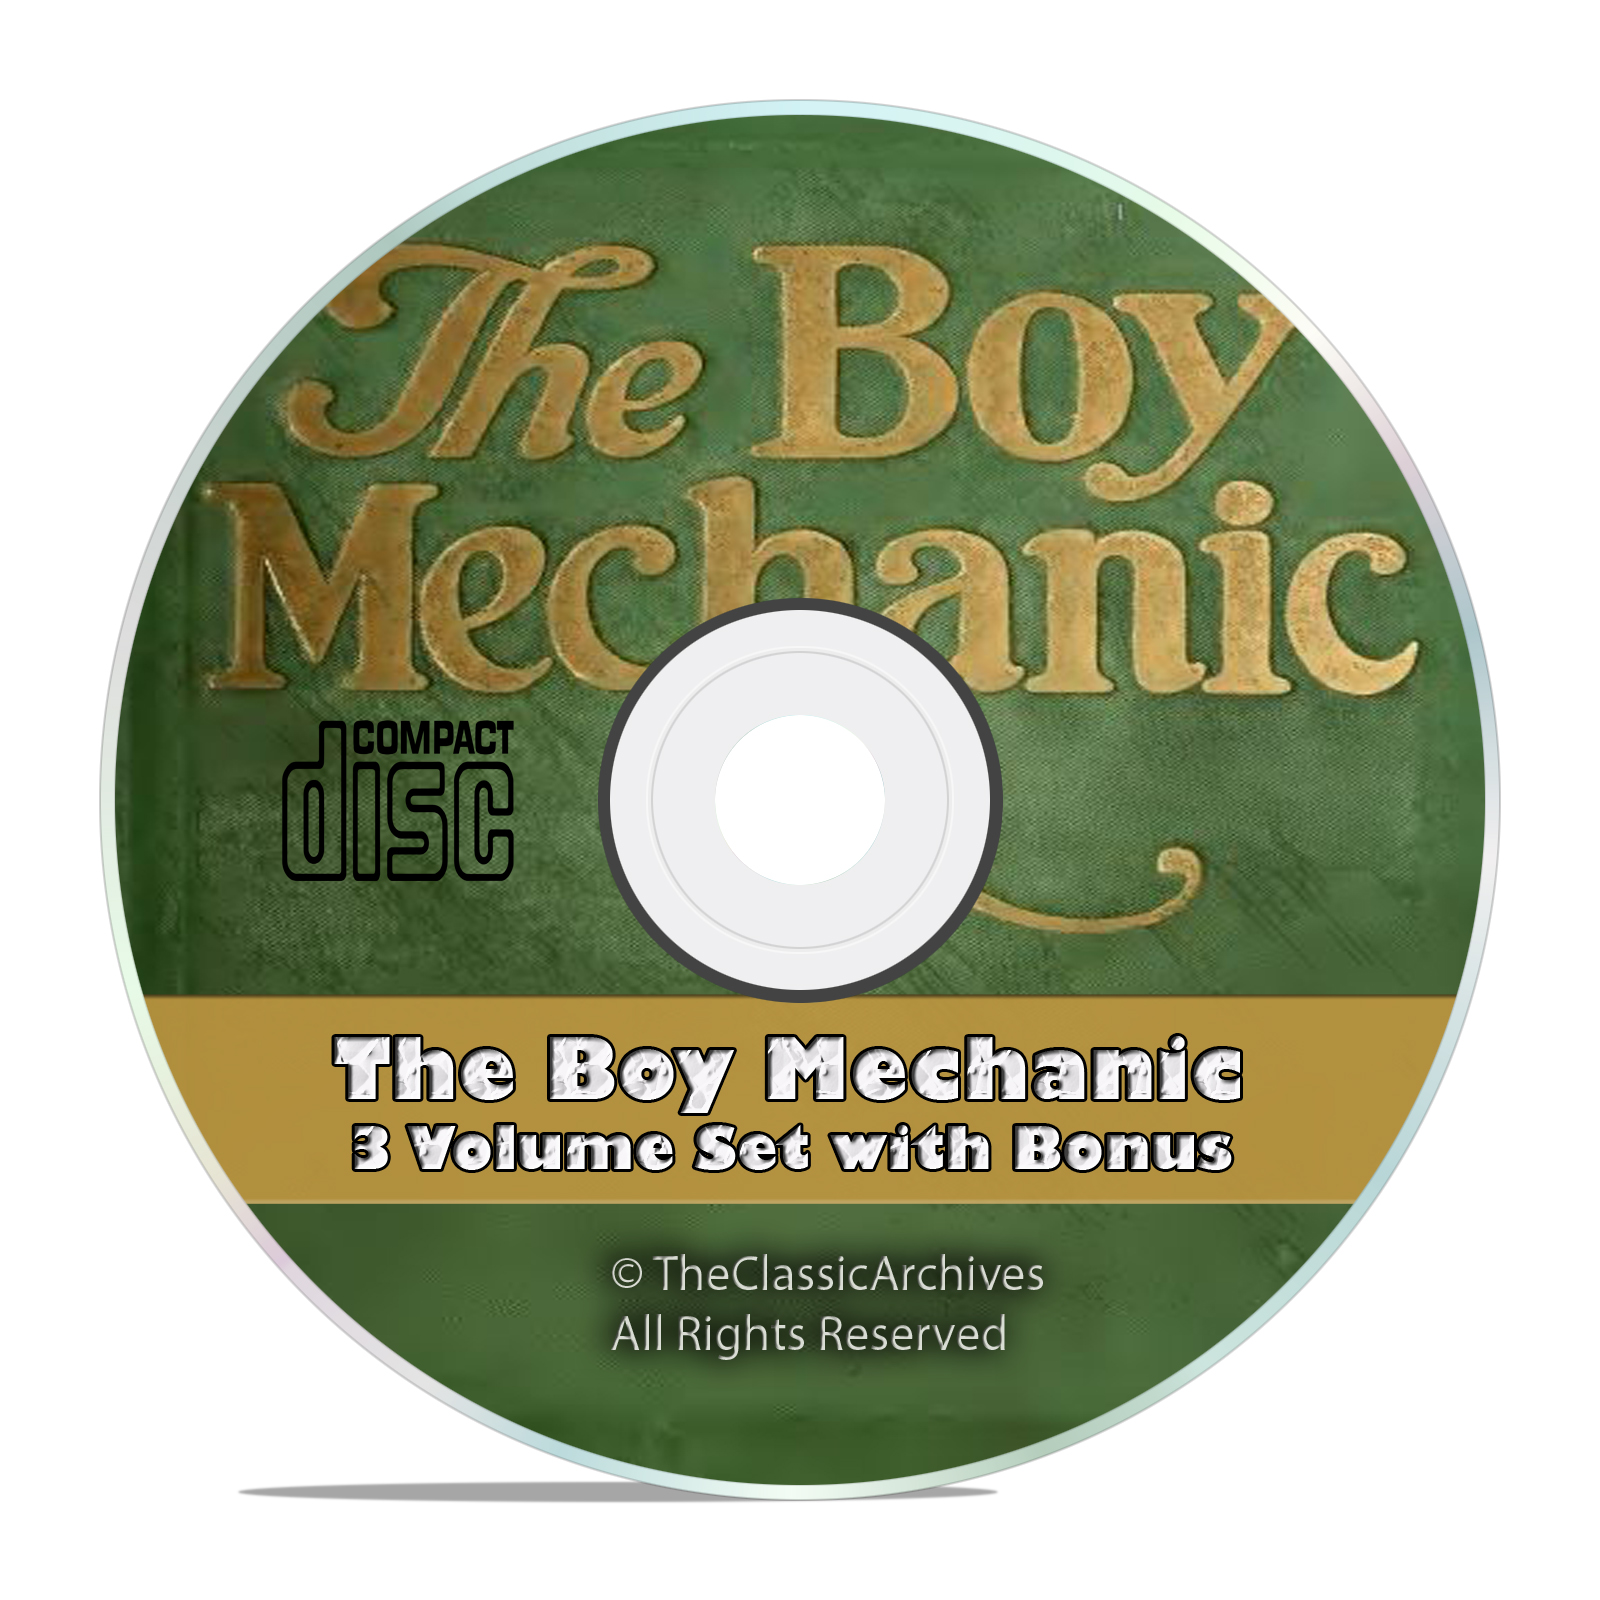 The Boy Mechanic, Mechanical, Electrical 3000 Projects for Boys to Do